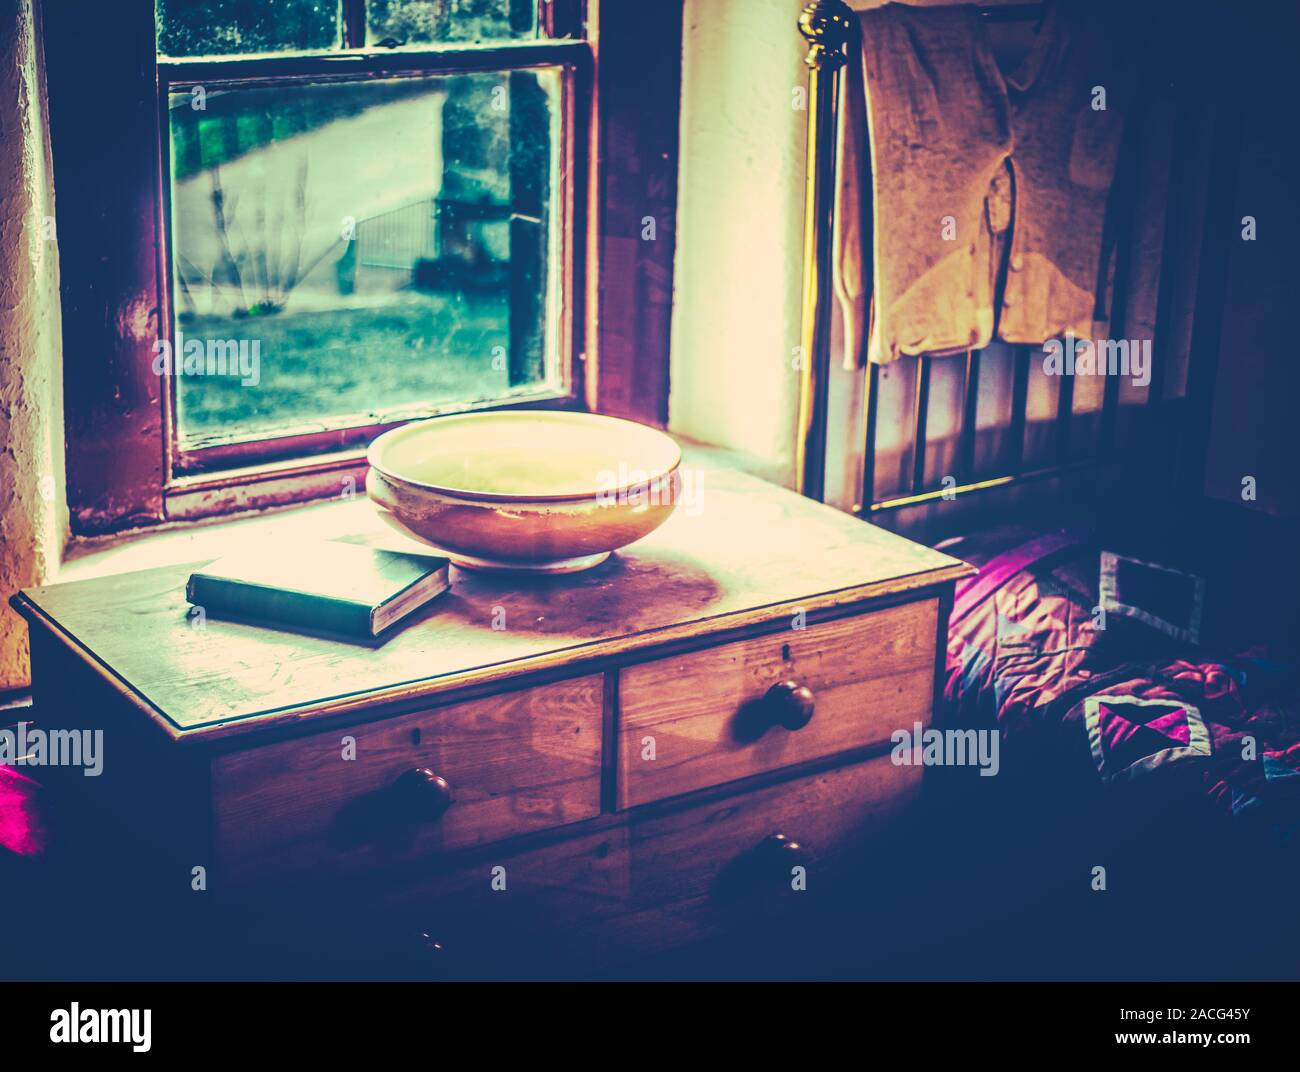 Old Fashioned 19th Century Bedroom Scene With Long Johns, Wash Basin And Bible Stock Photo